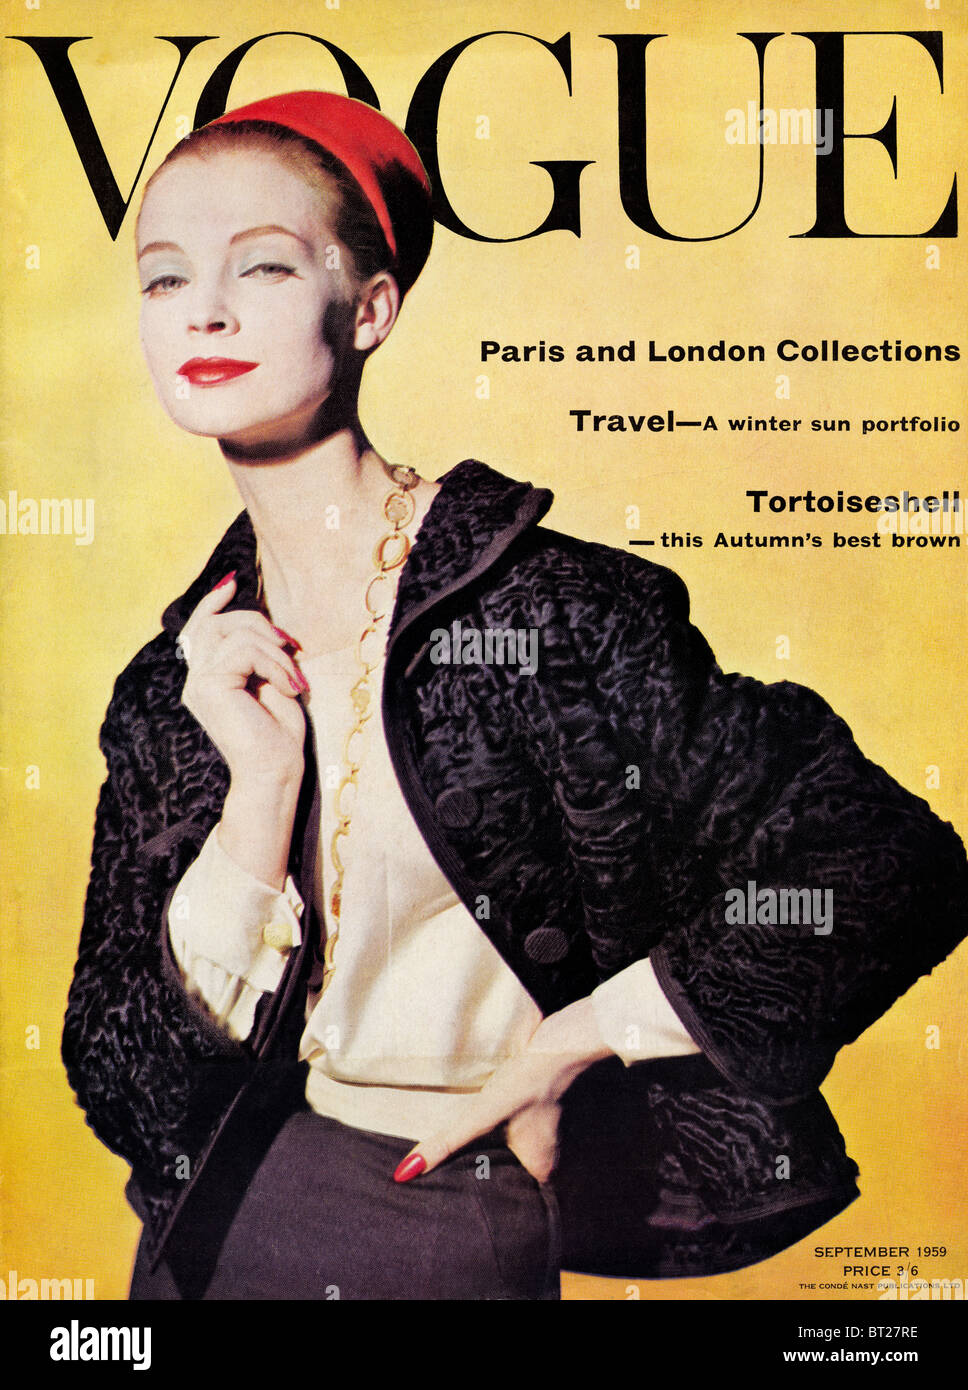 Couverture de magazine de mode VOGUE Septembre 1959 au prix